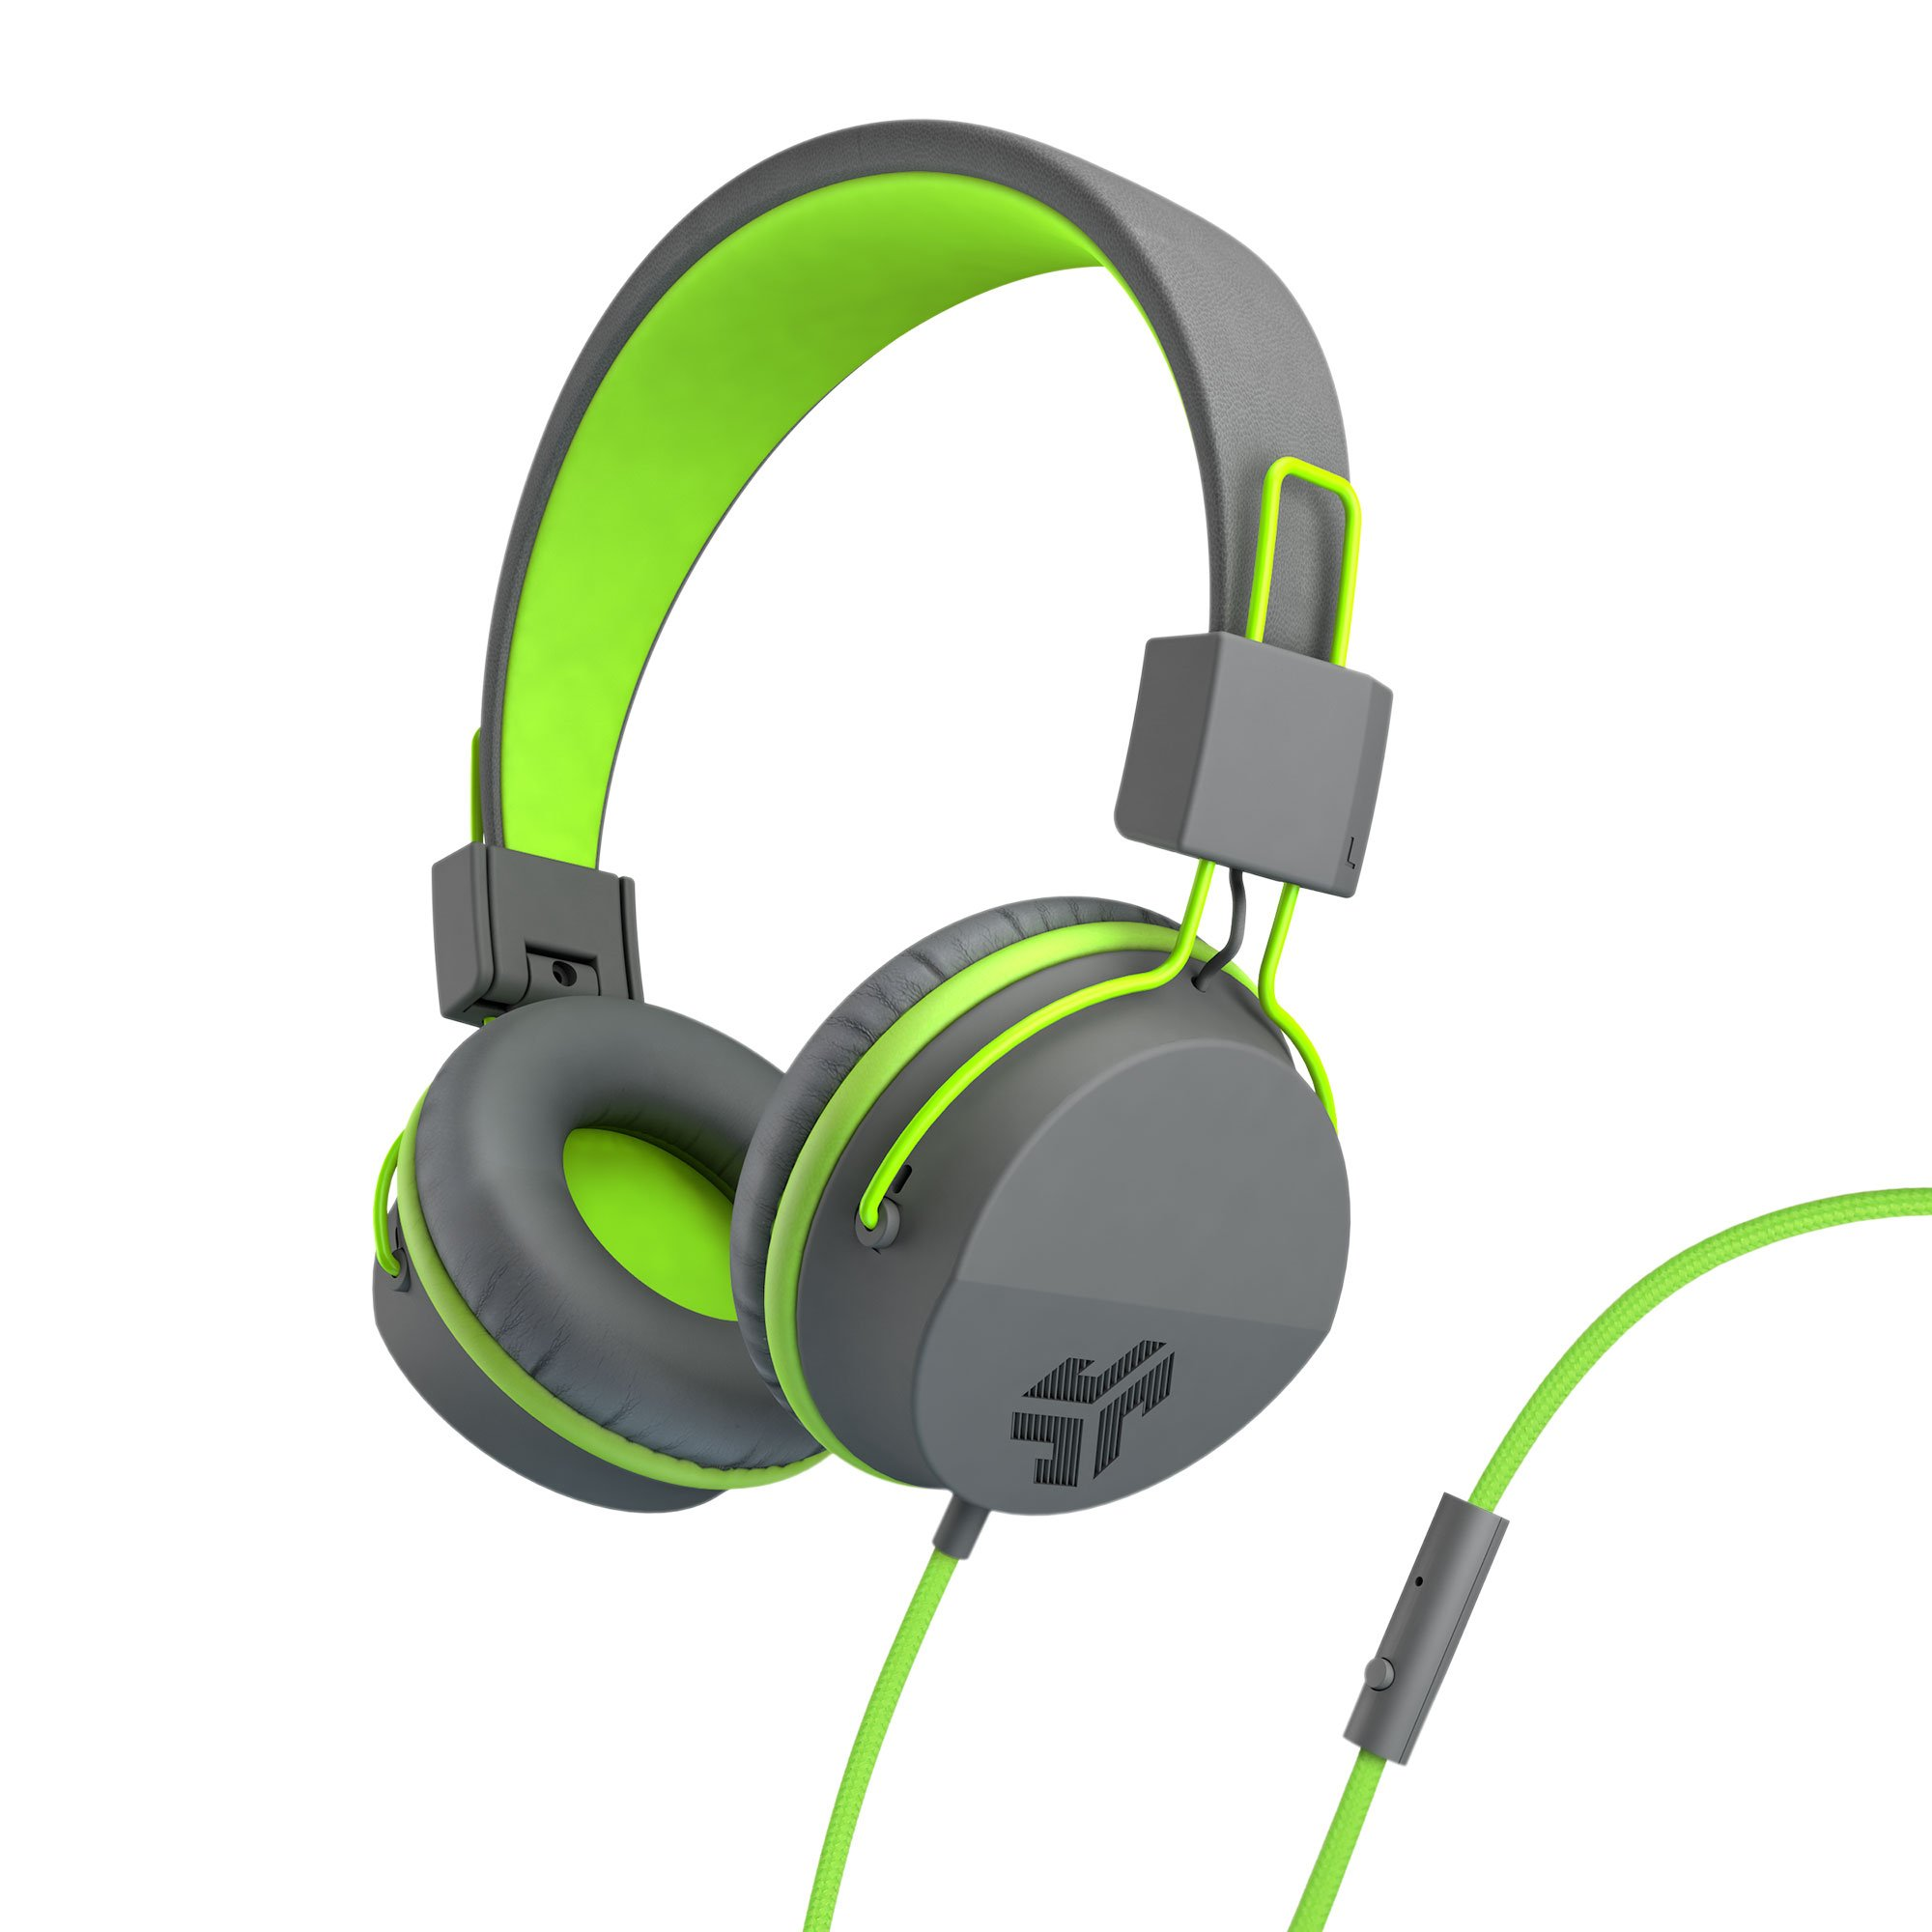 JLab Audio Neon Headphones On-Ear Feather Light, Ultra-plush Eco Leather, 40mm drivers, GUARANTEED FOR LIFE - Graphite/Lime by JLAB